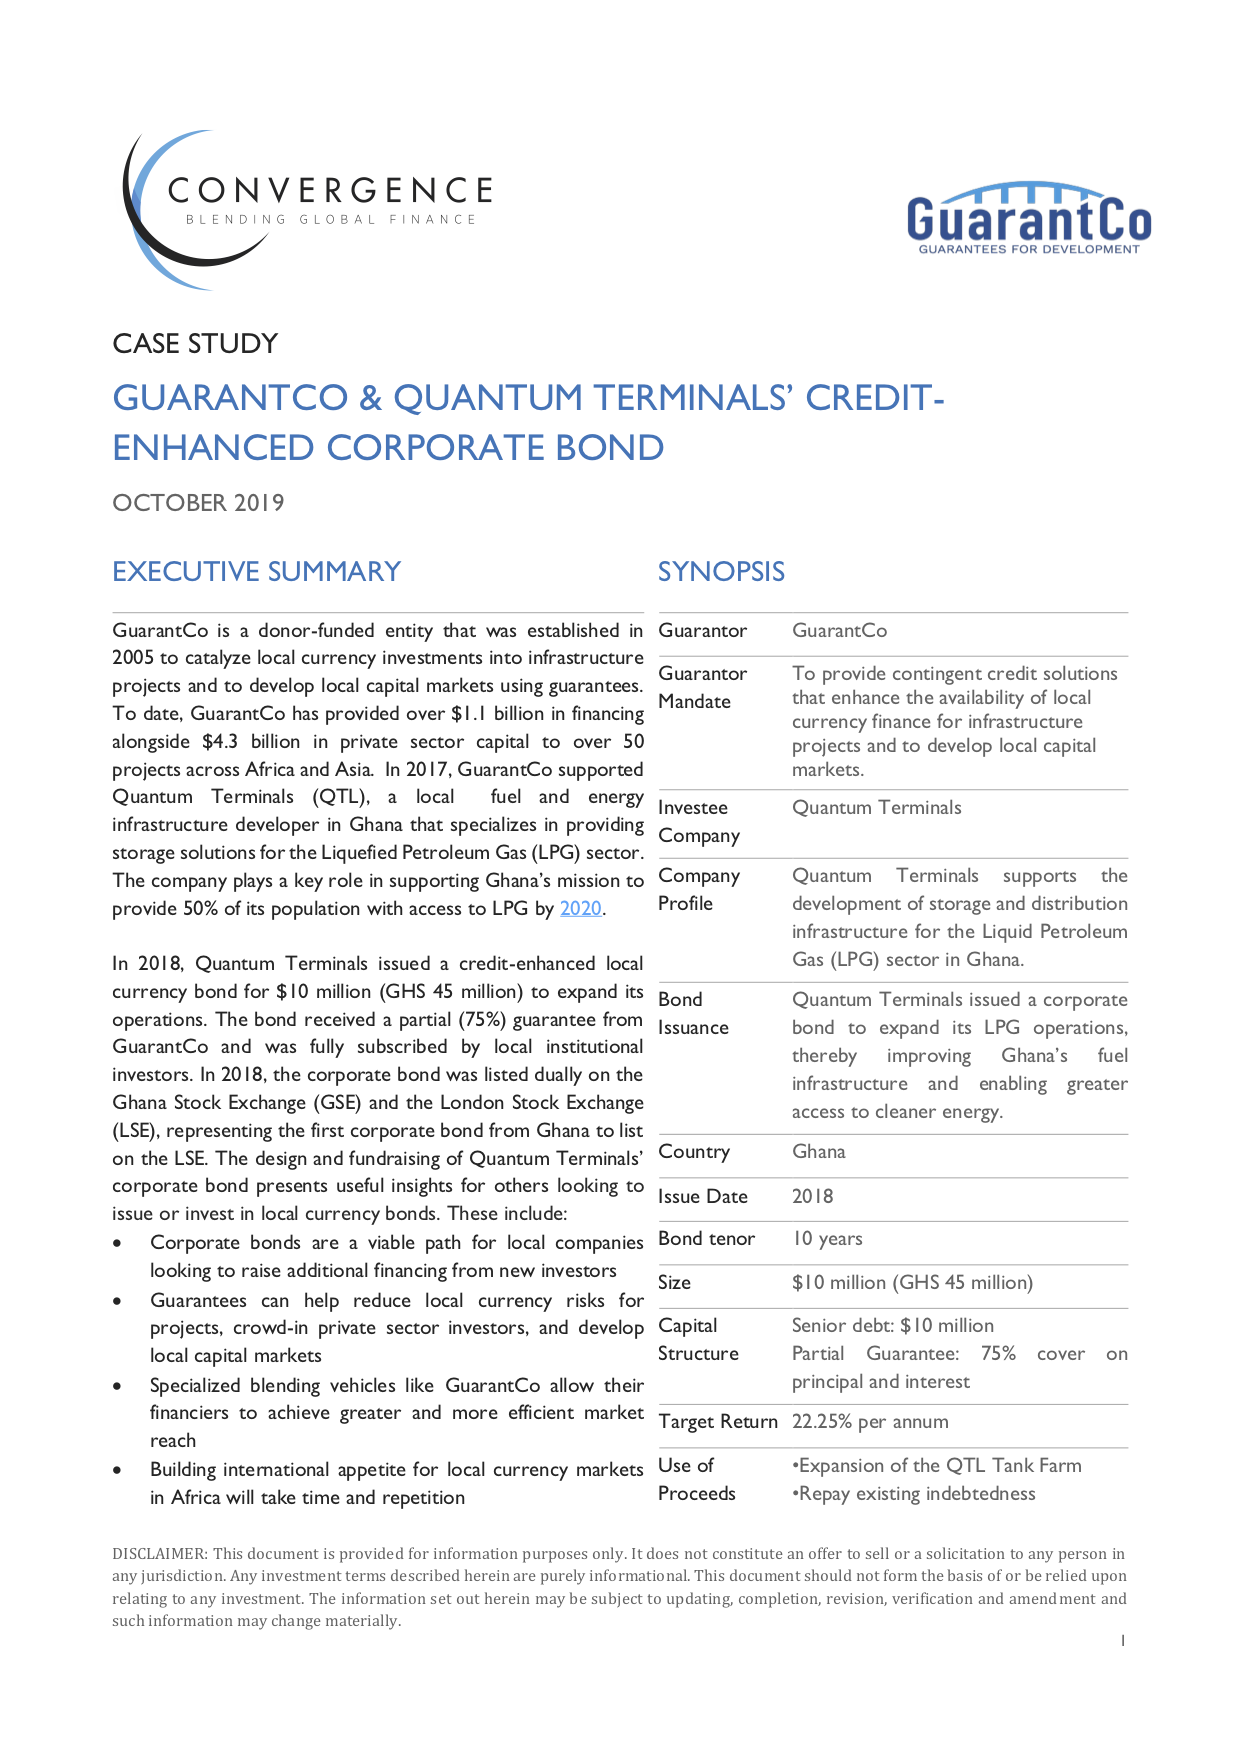 GuarantCo and Quantum Terminals' Credit-Enhanced Corporate Bond Case Study